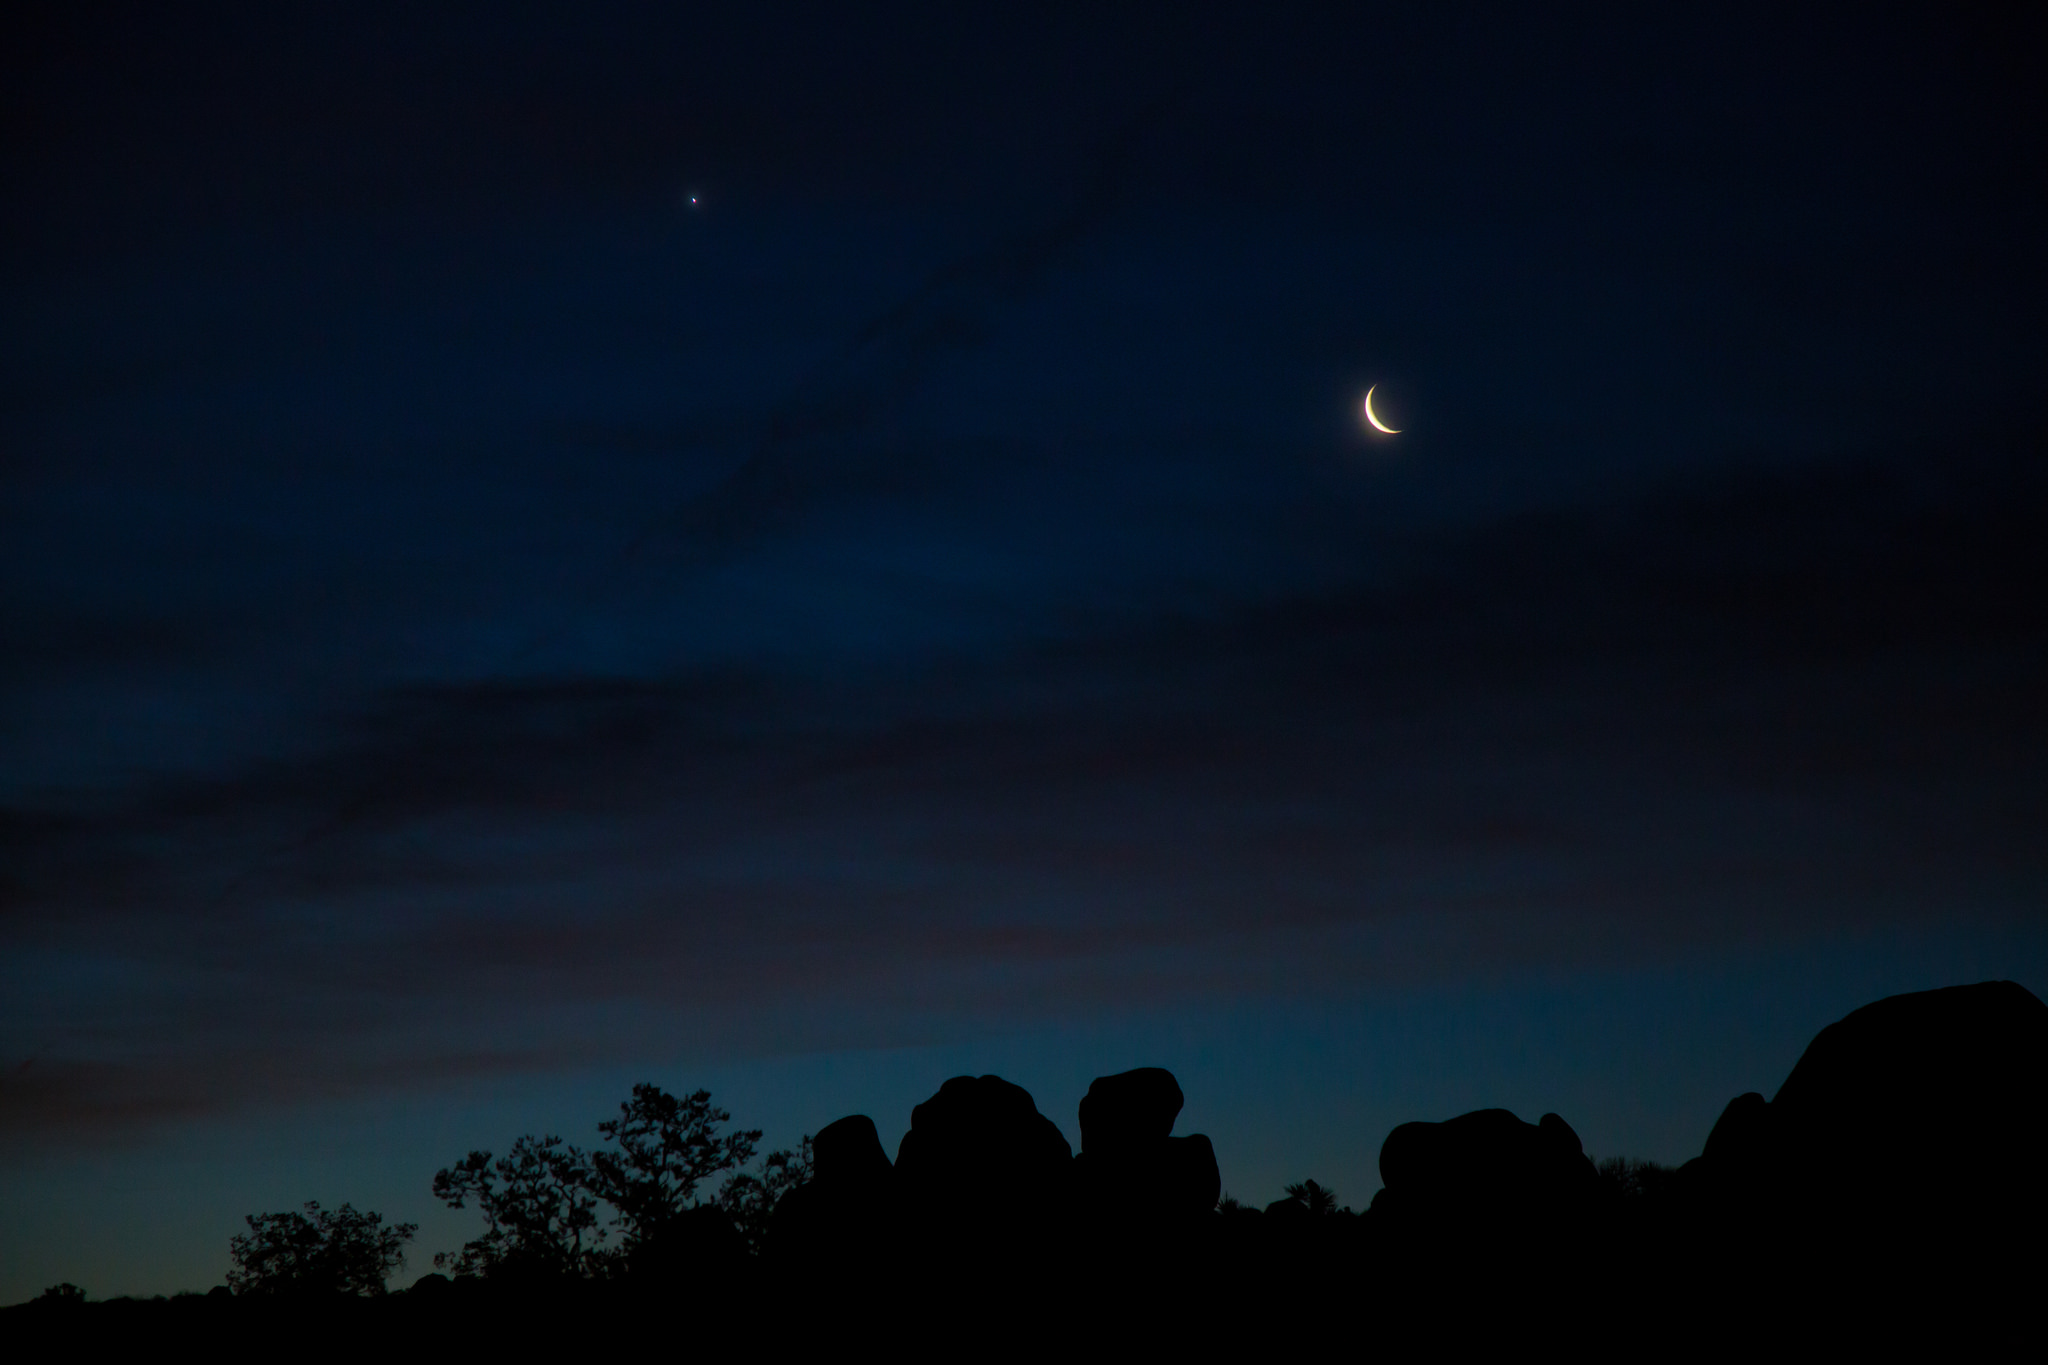 A waning crescent moon with planet Venus to the left just before sunrise at Skull Rock